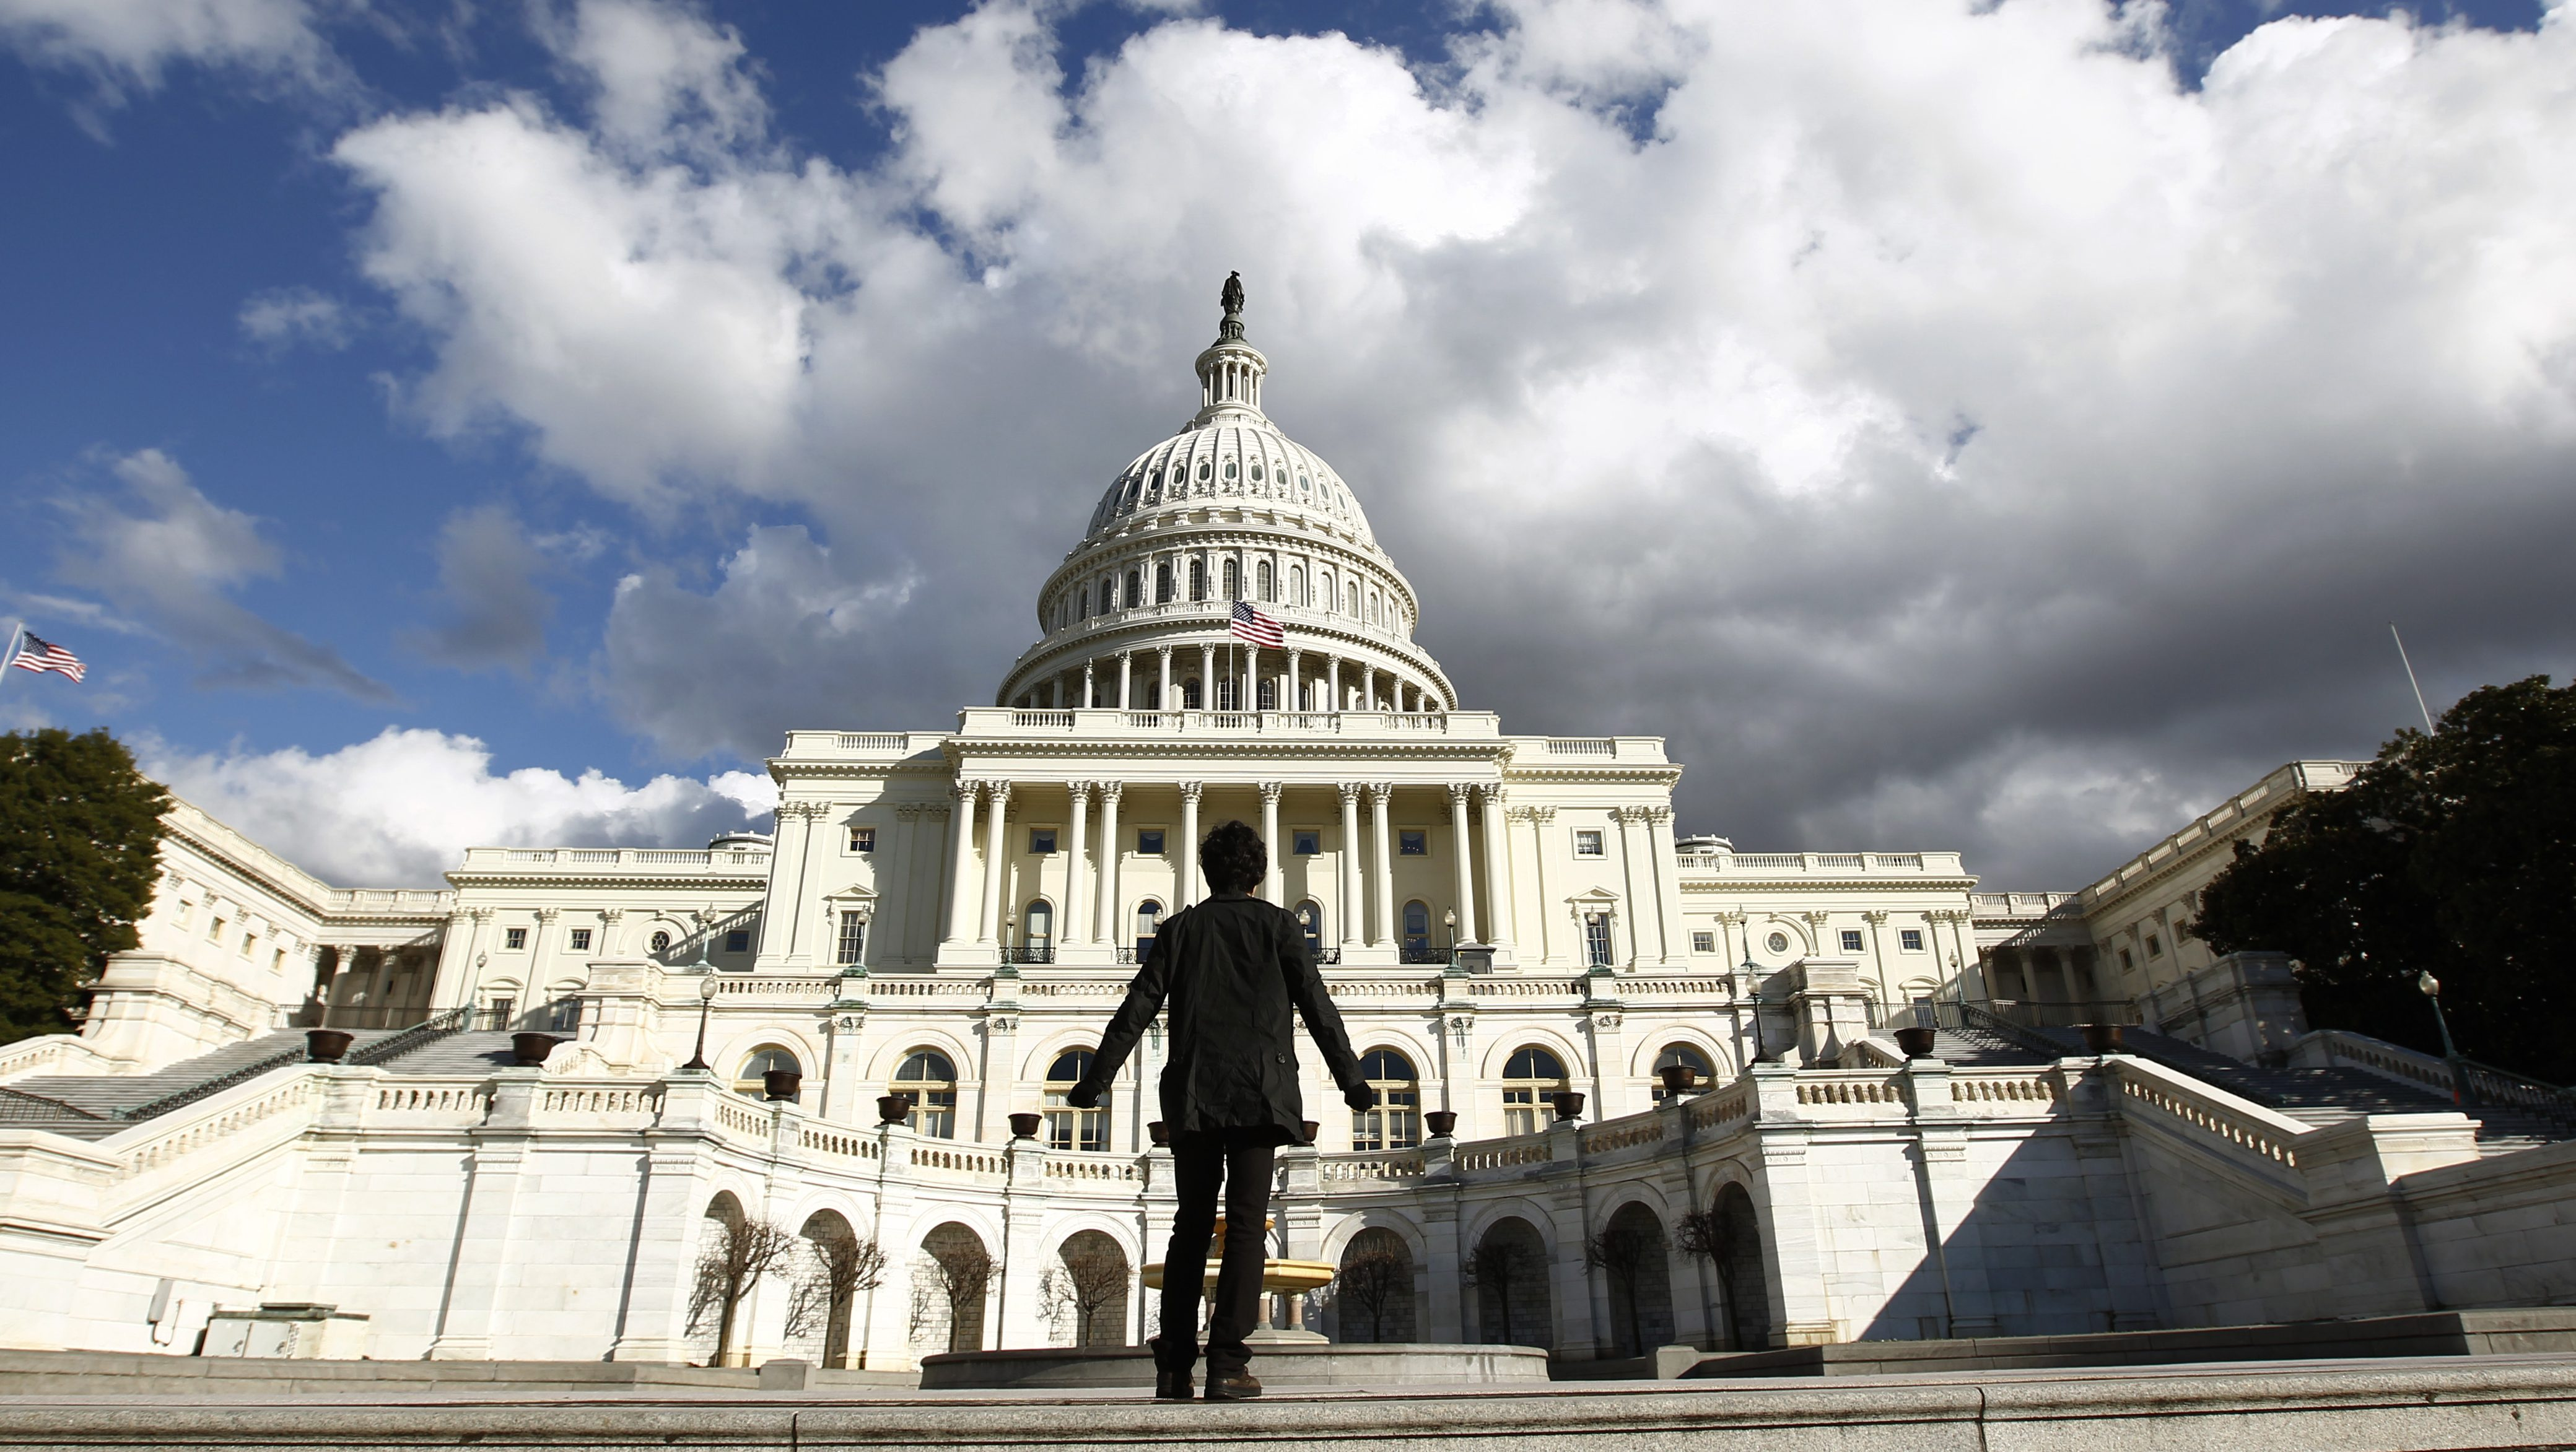 A tourist gazes up towards the dome of the U.S. Capitol in Washington January 25, 2010.